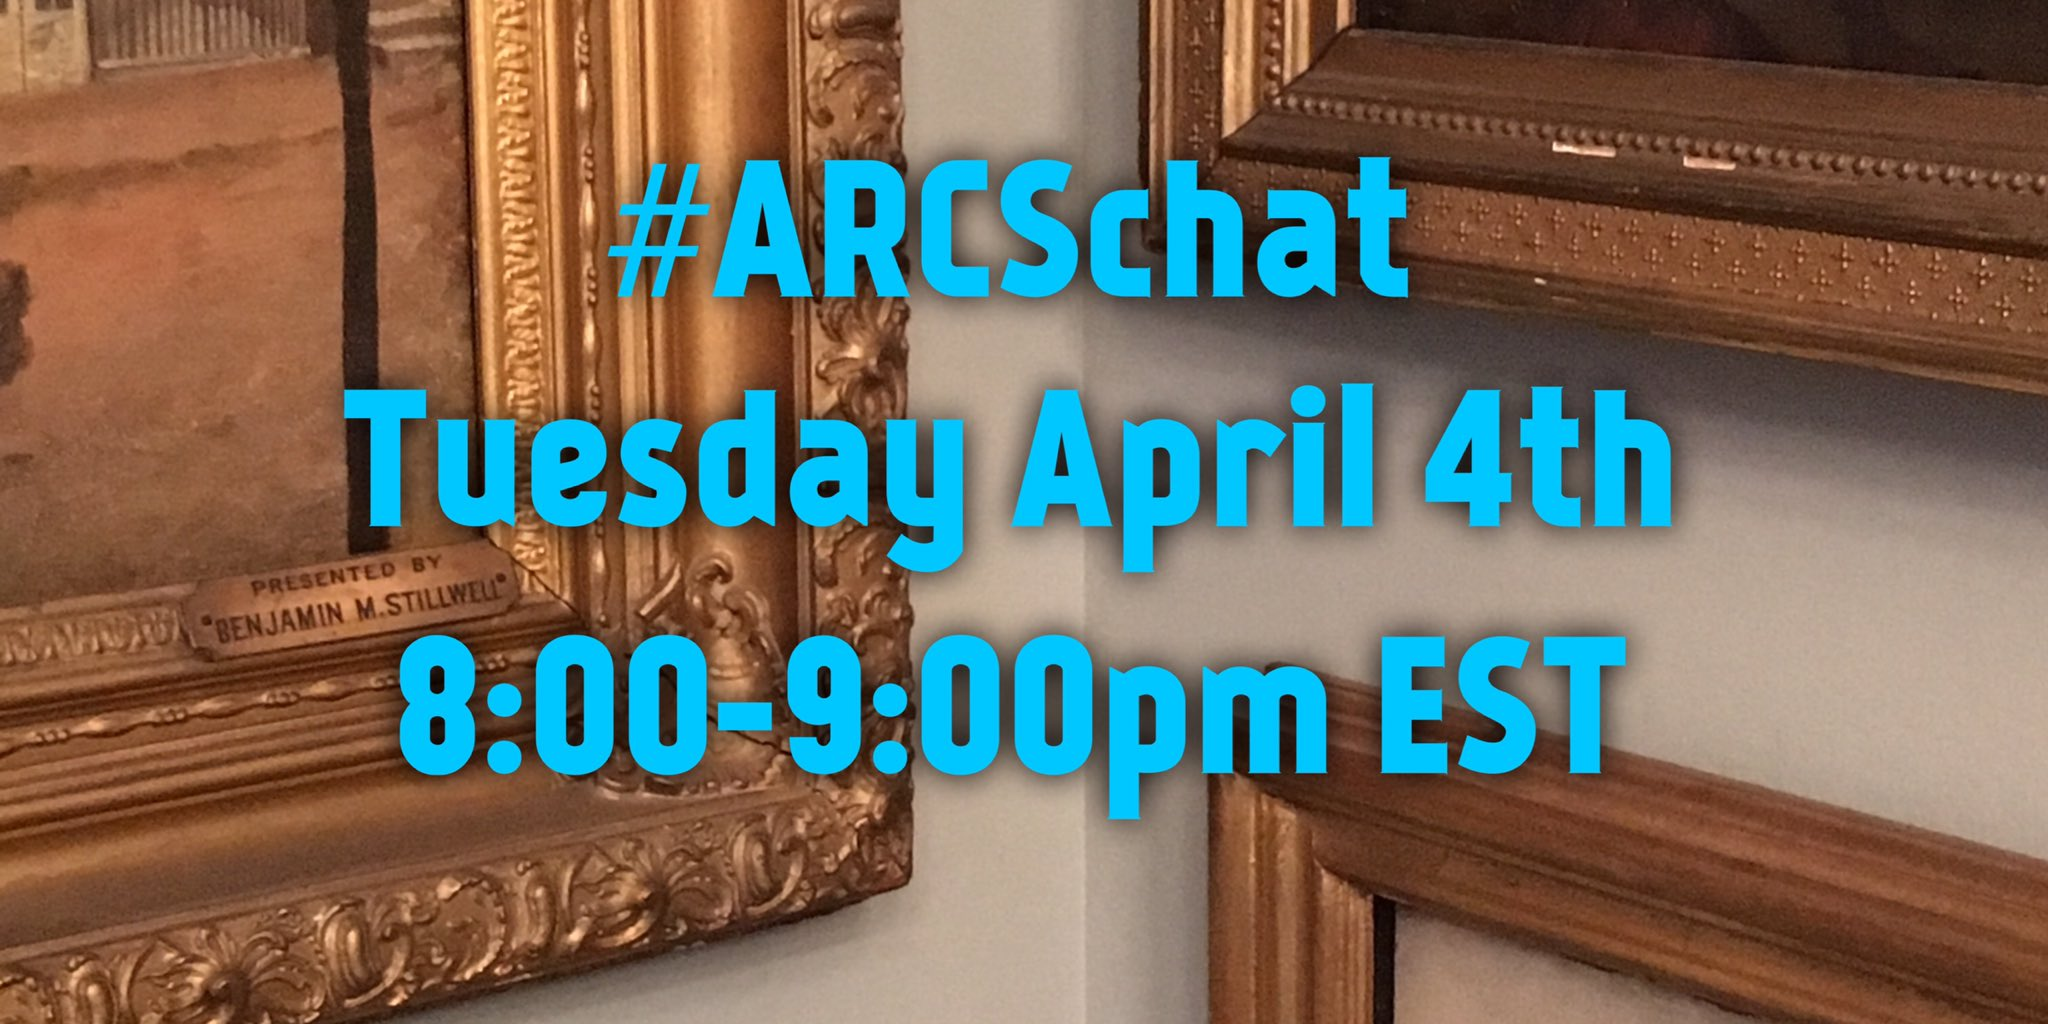 Thumbnail for #ARCSchat 04 April 2017 - Interns and Internships